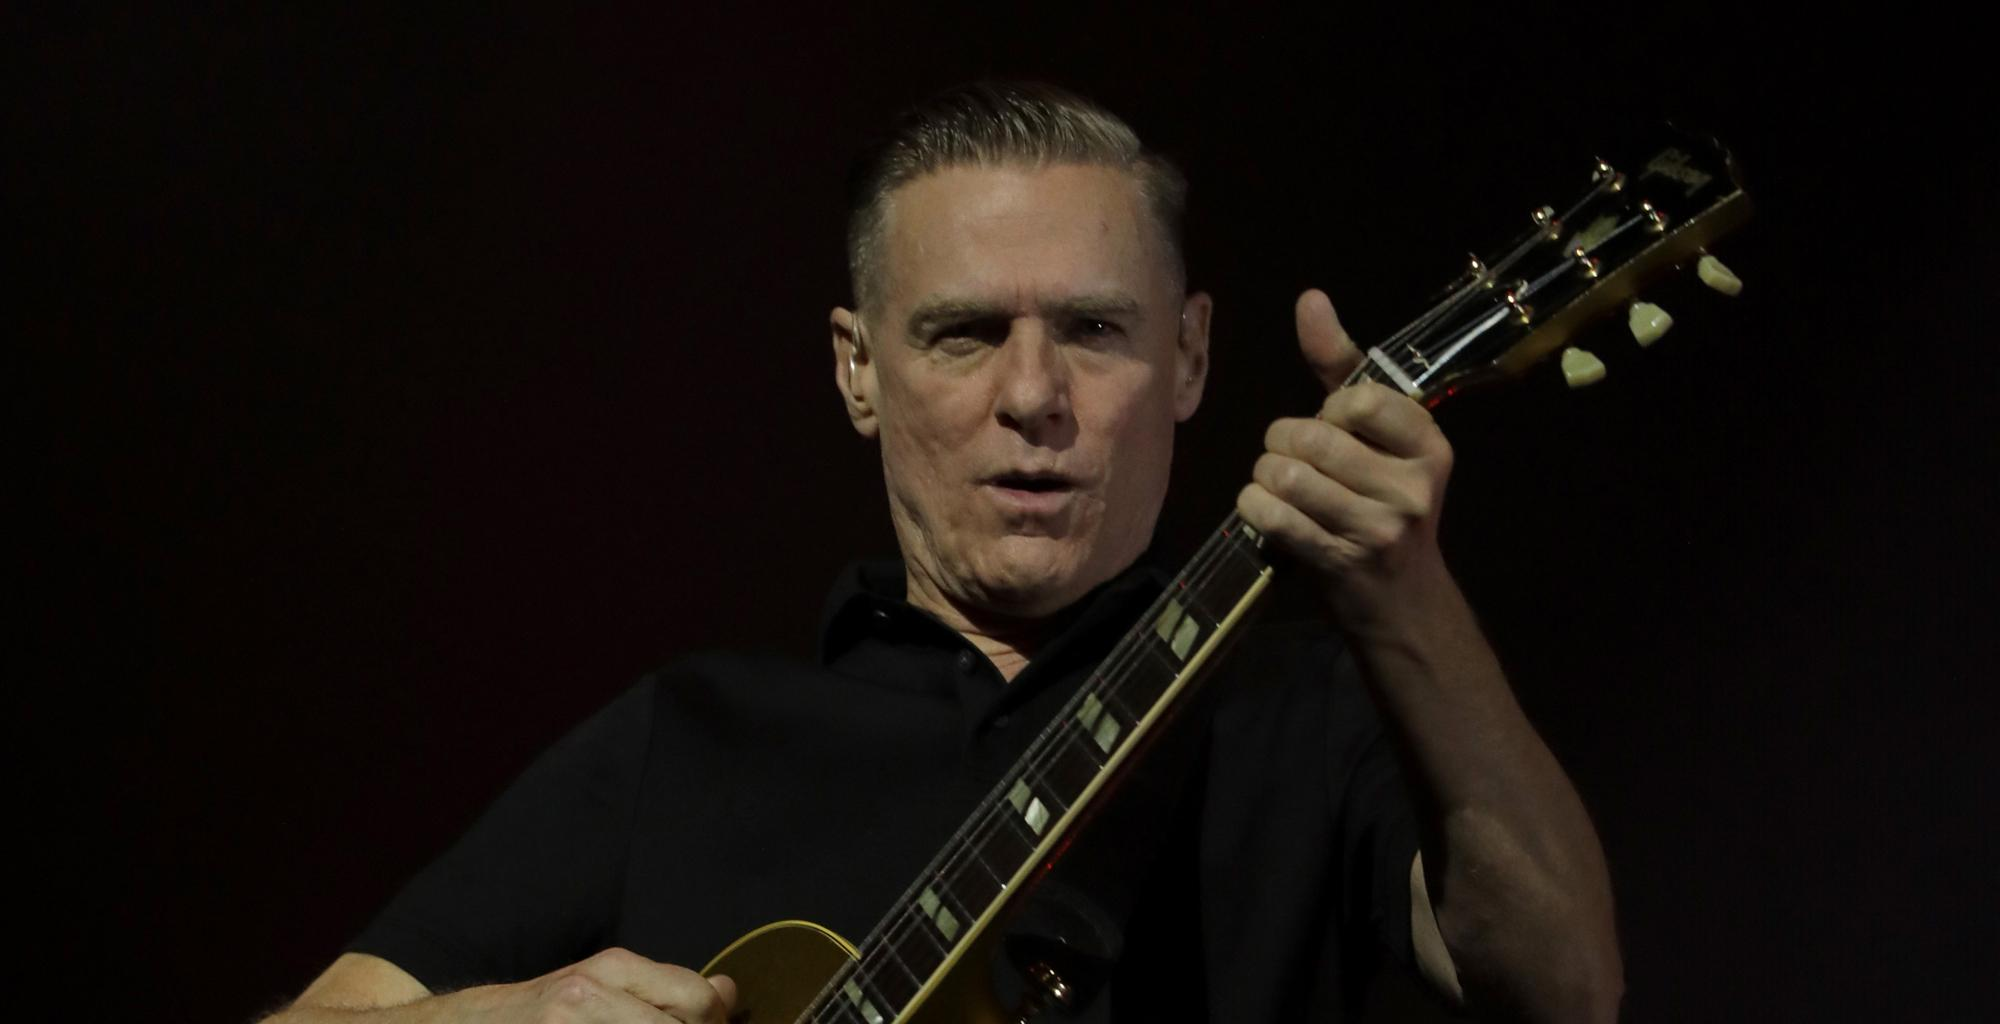 Bryan Adams Goes On Racist Rant Blaming China For The COVID-19 Pandemic And Social Media Is Outraged!